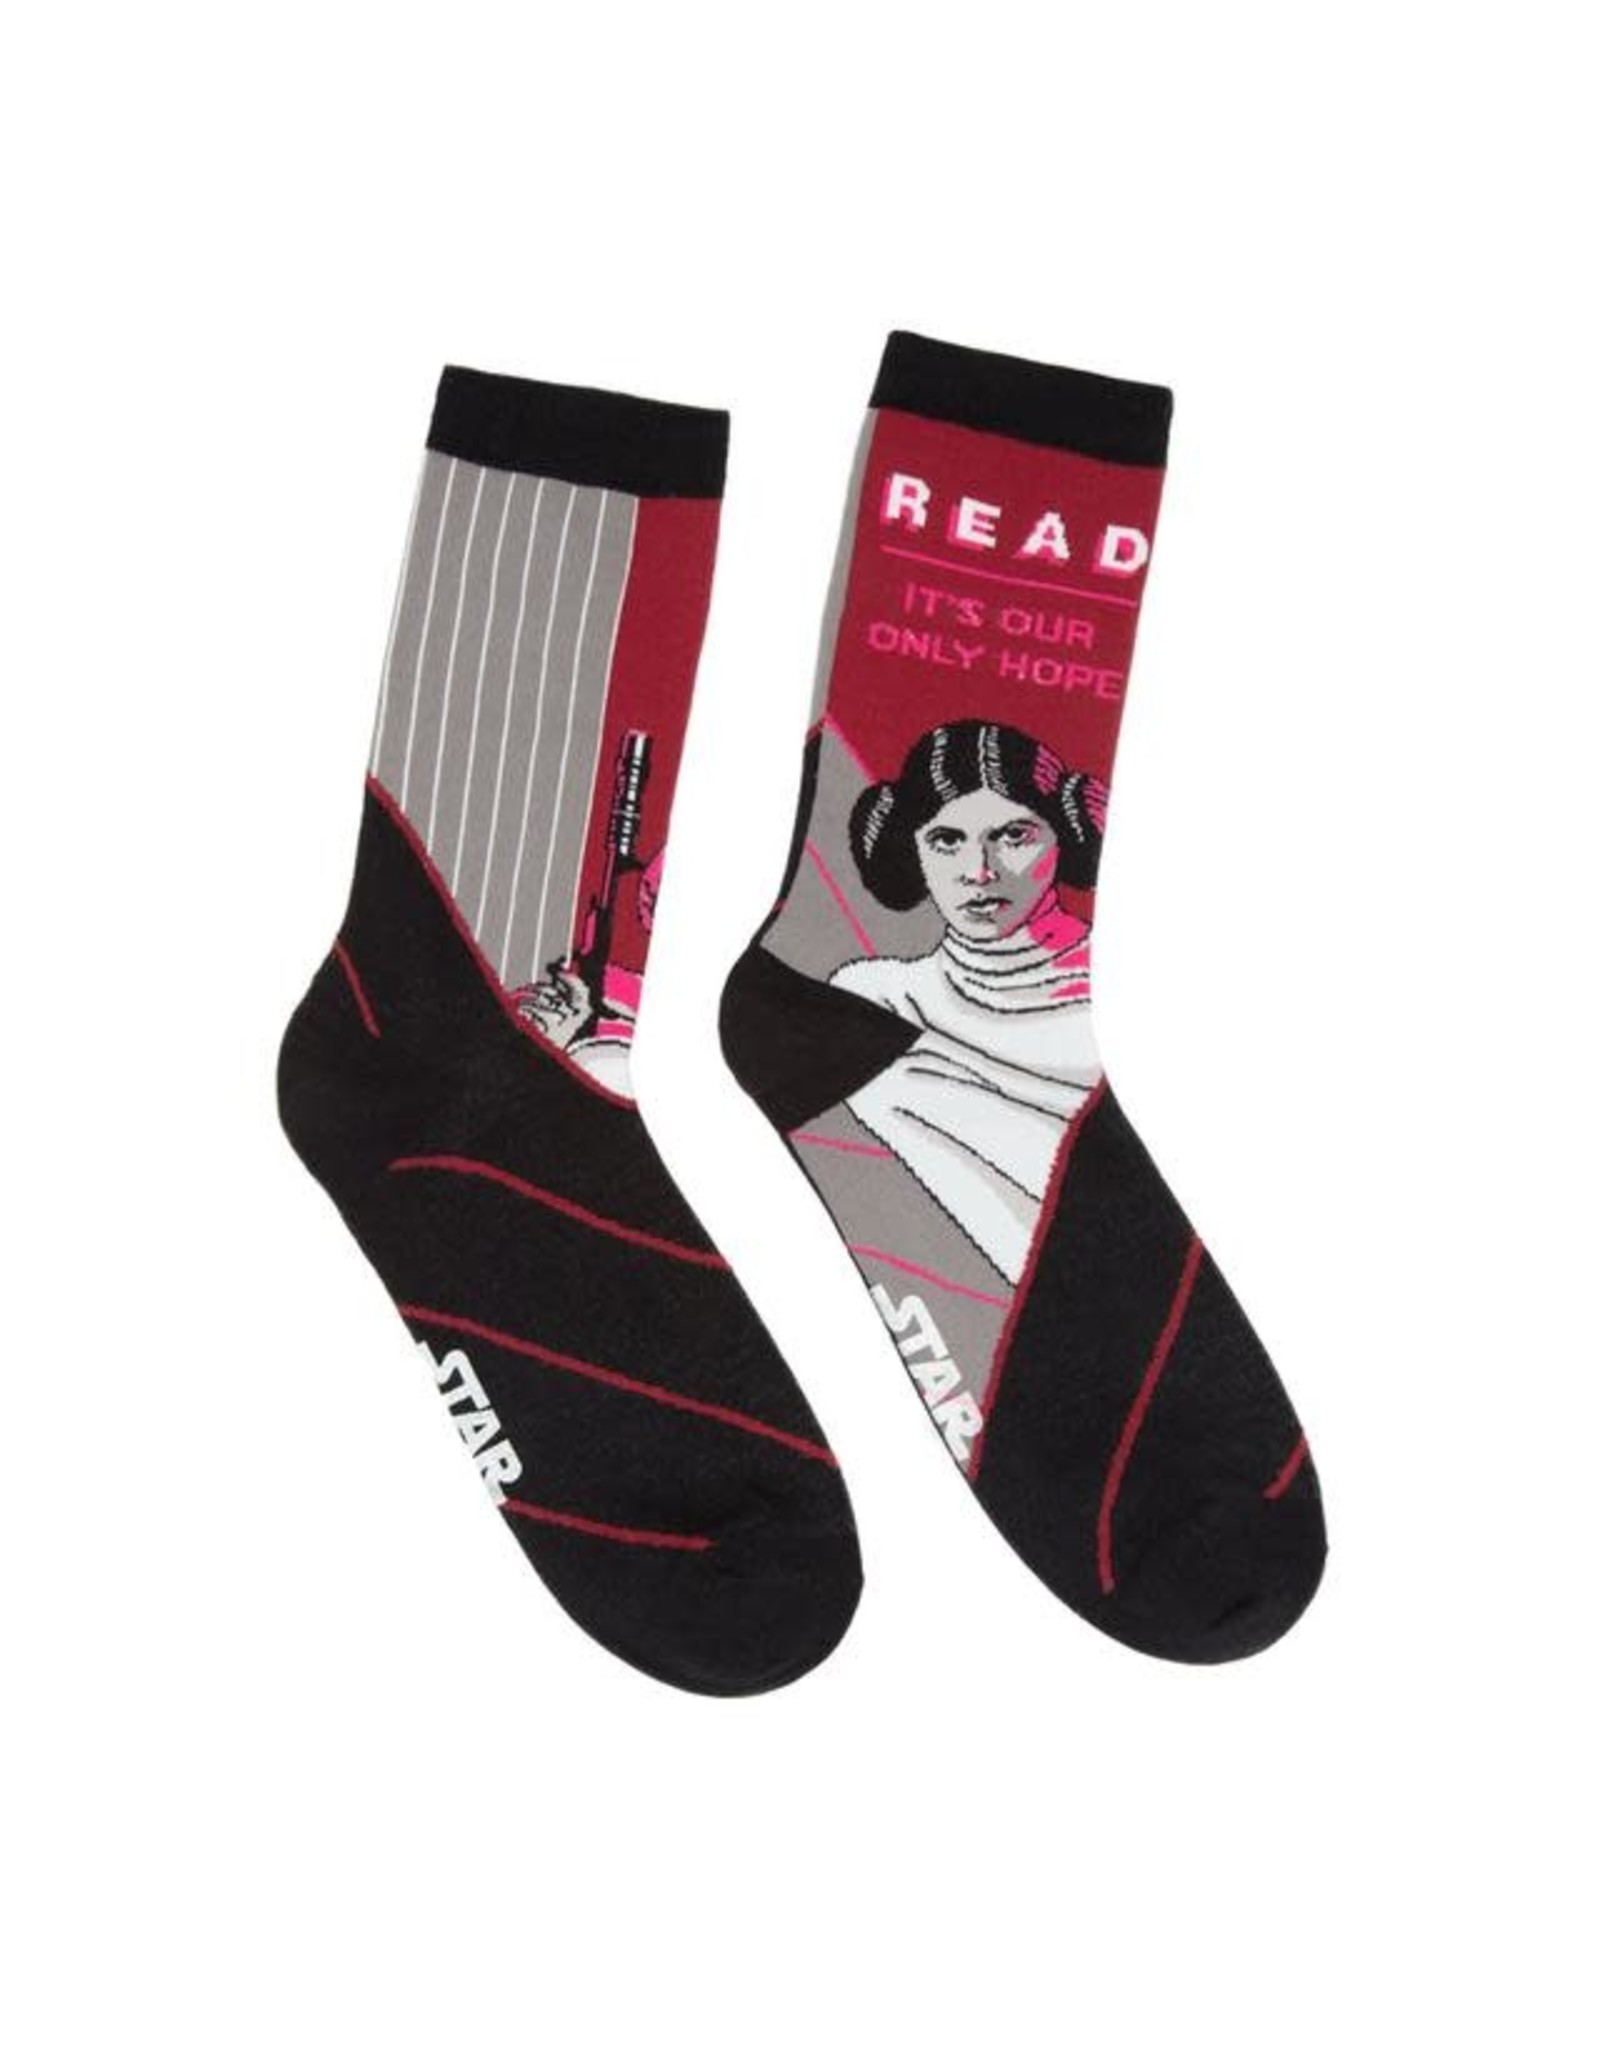 Socks (Womens) - Princess Leia (Read, It's Our Only Hope)